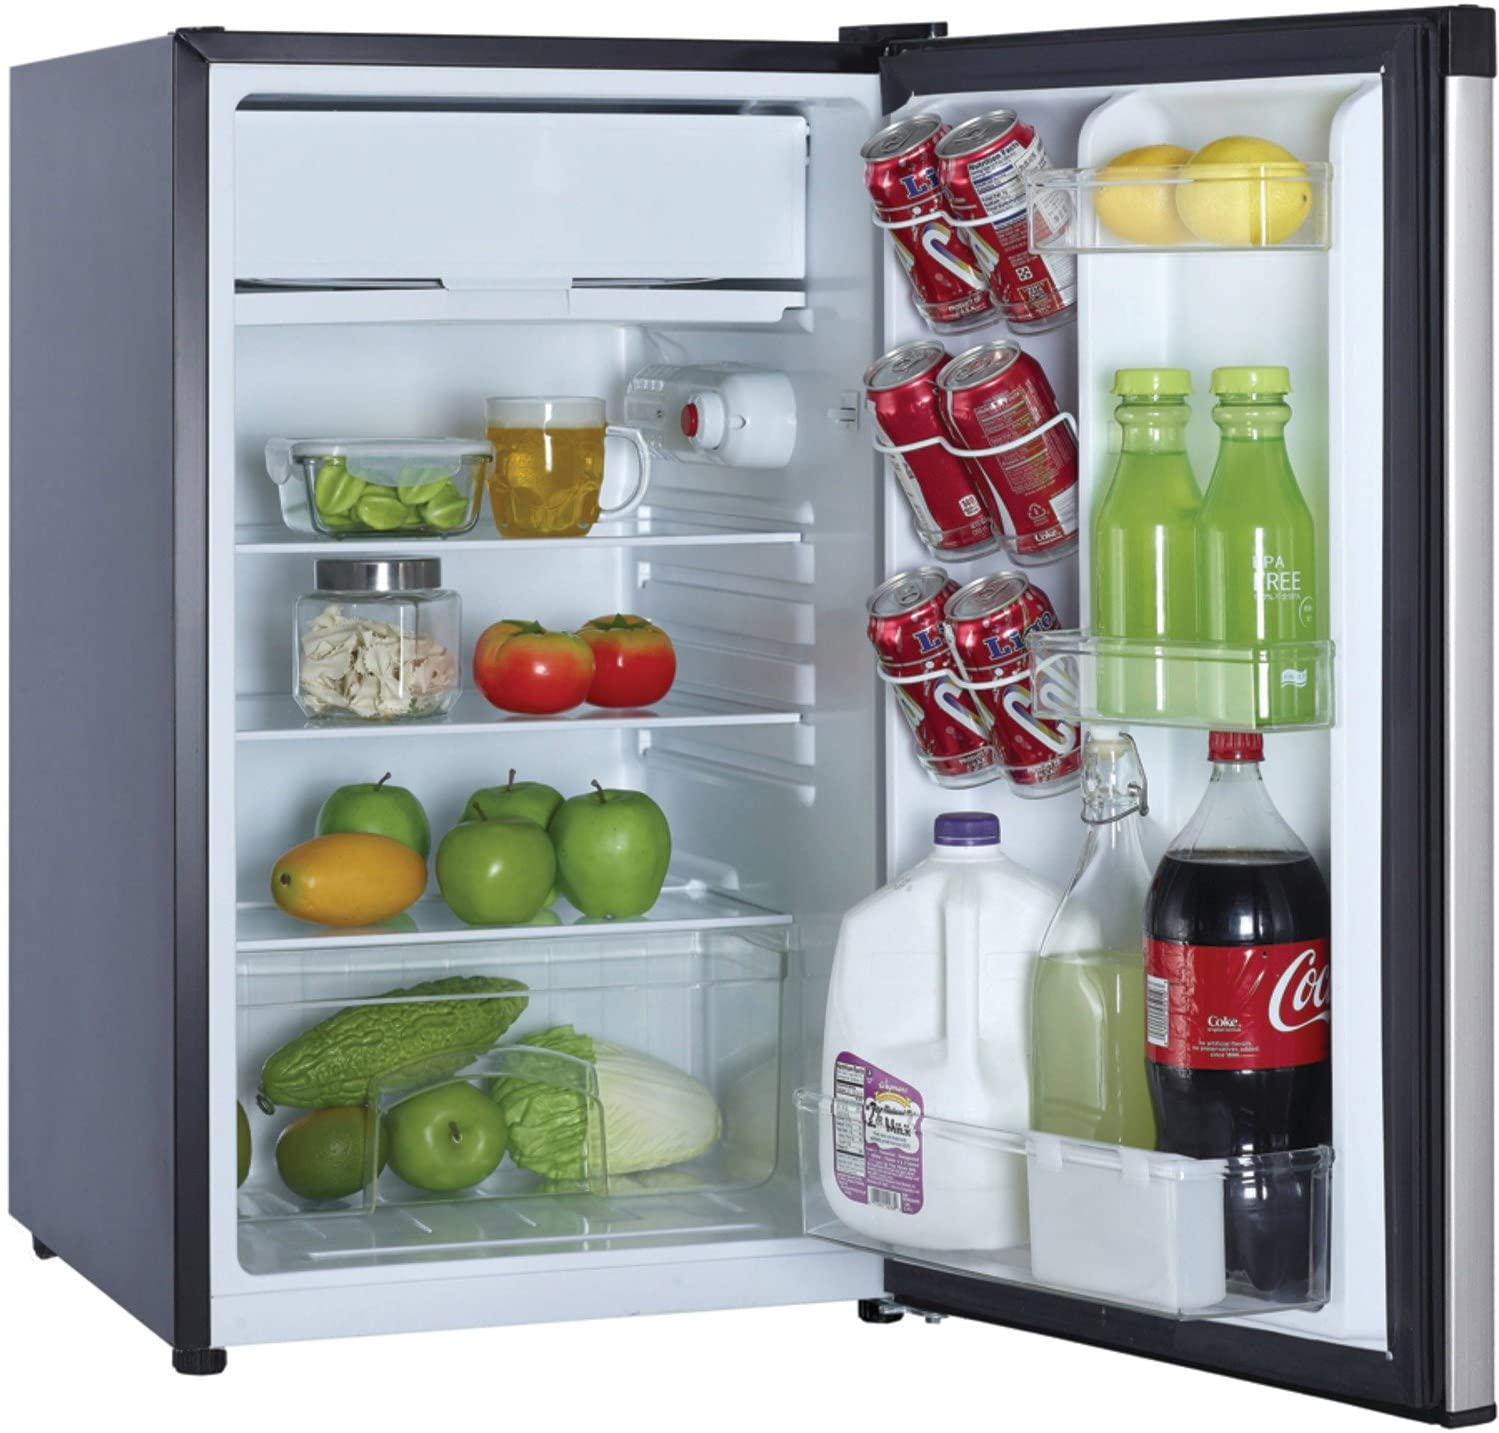 Review of Magic Chef MCBR440S2 Refrigerator, 4.4 cu. ft, Stainless Steel